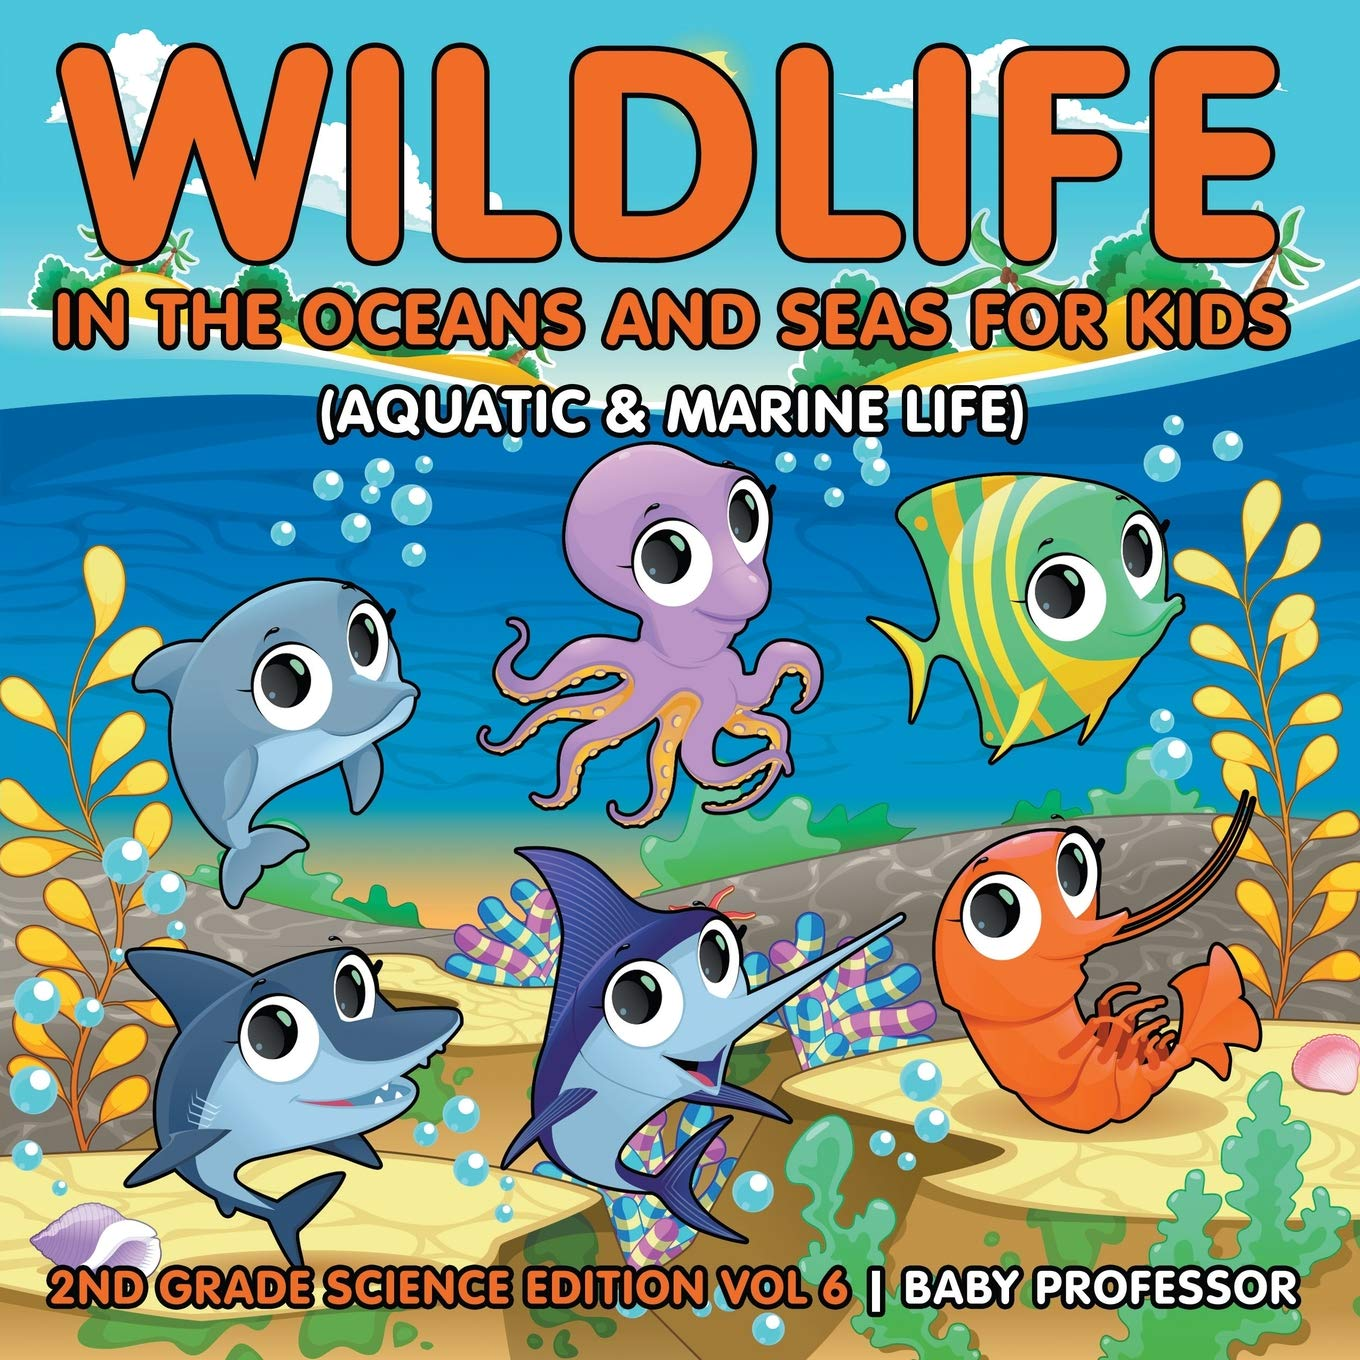 Ocean life in the garden of eden clipart picture Wildlife in the Oceans and Seas for Kids (Aquatic & Marine ... picture